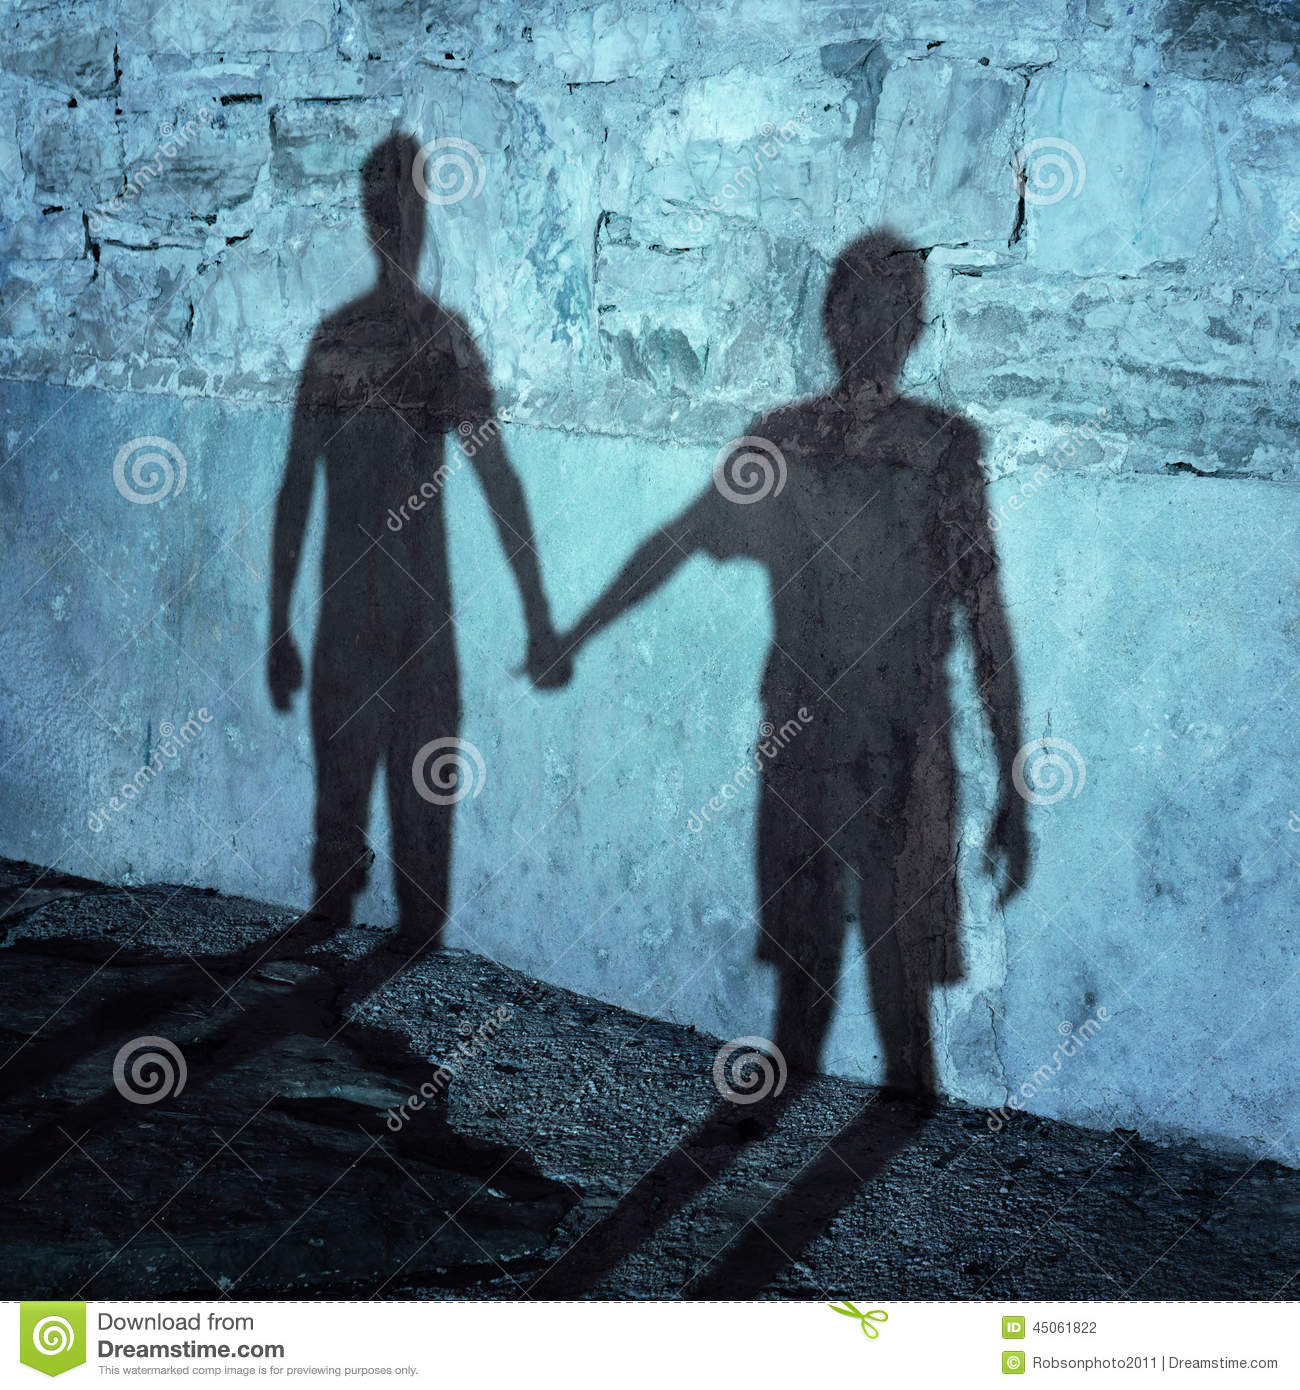 Silhouette Of Two People Holding Hands Stock Photo - Image of shadow ... 6d346da867